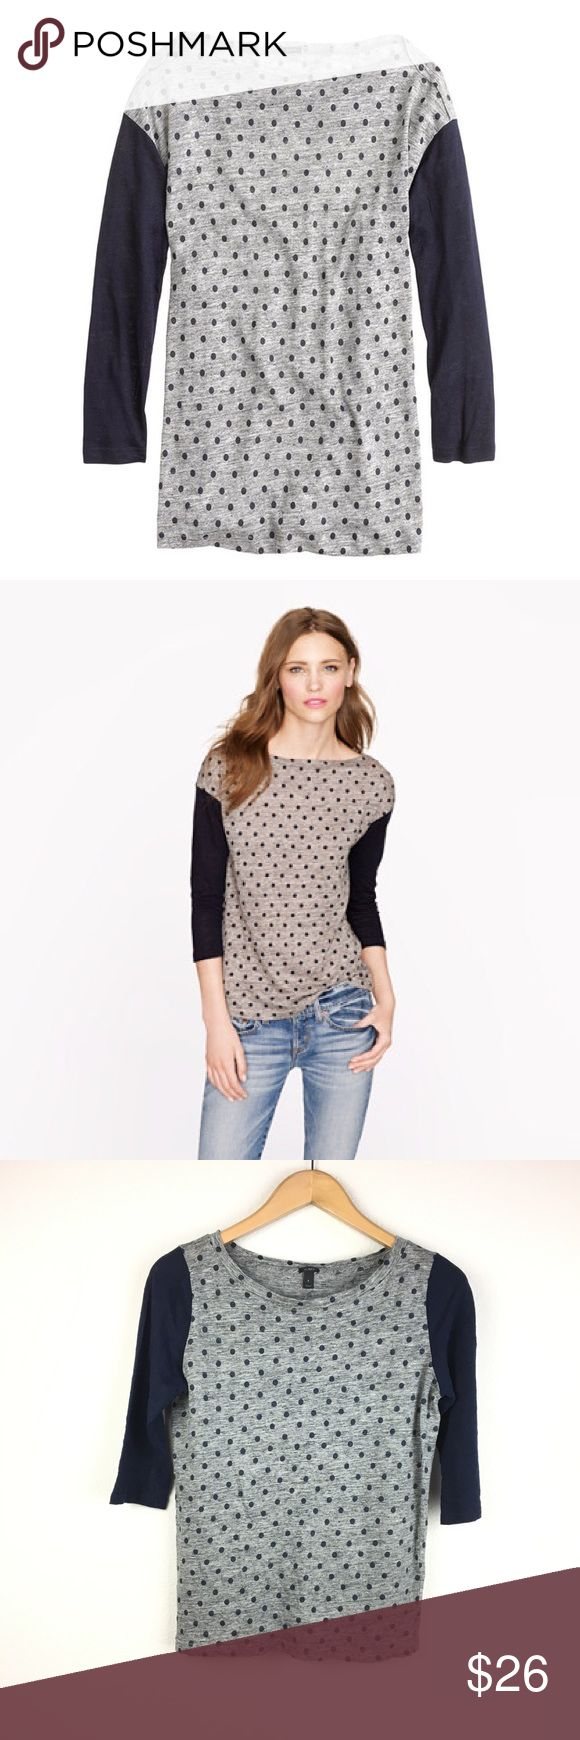 J.Crew Linen Polka Dot Baseball Tee 100% linen.  Gray body with navy blue polka dots.  Colorblocked navy ¾ length sleeves.  Round neckline.  Semi-fitted, slightly drapey fit.  Excellent pre-owned condition. J. Crew Tops Tees - Long Sleeve